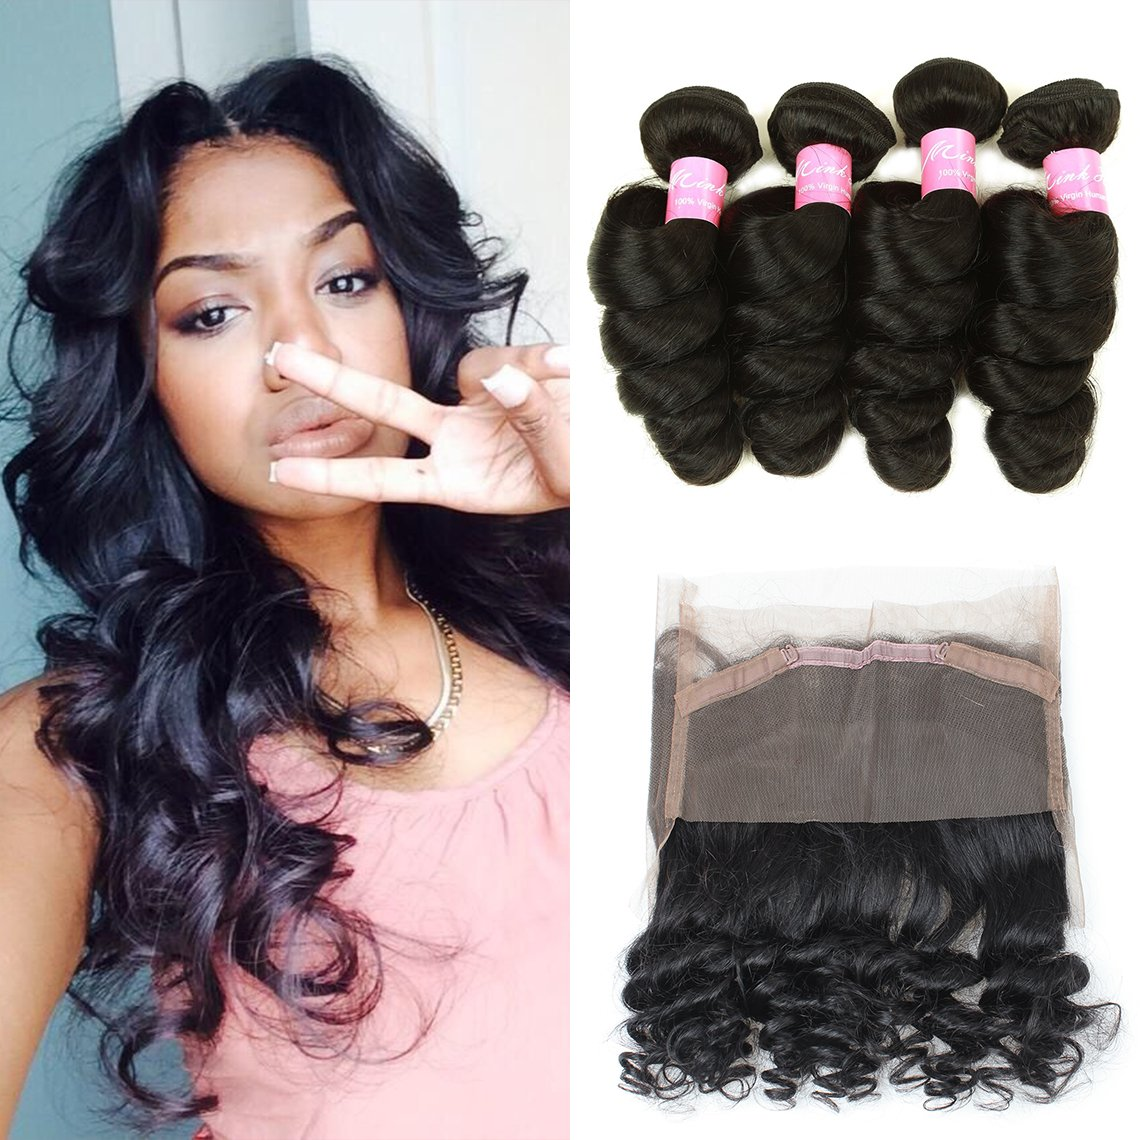 Mink Hair Loose Wave with 360 Frontal (14 16 18+12) 7A Grade Brazilian Loose Wave Bundles Virgin Human Hair Extensions with 360 Free Part Lace Frontal Closure Natural Color